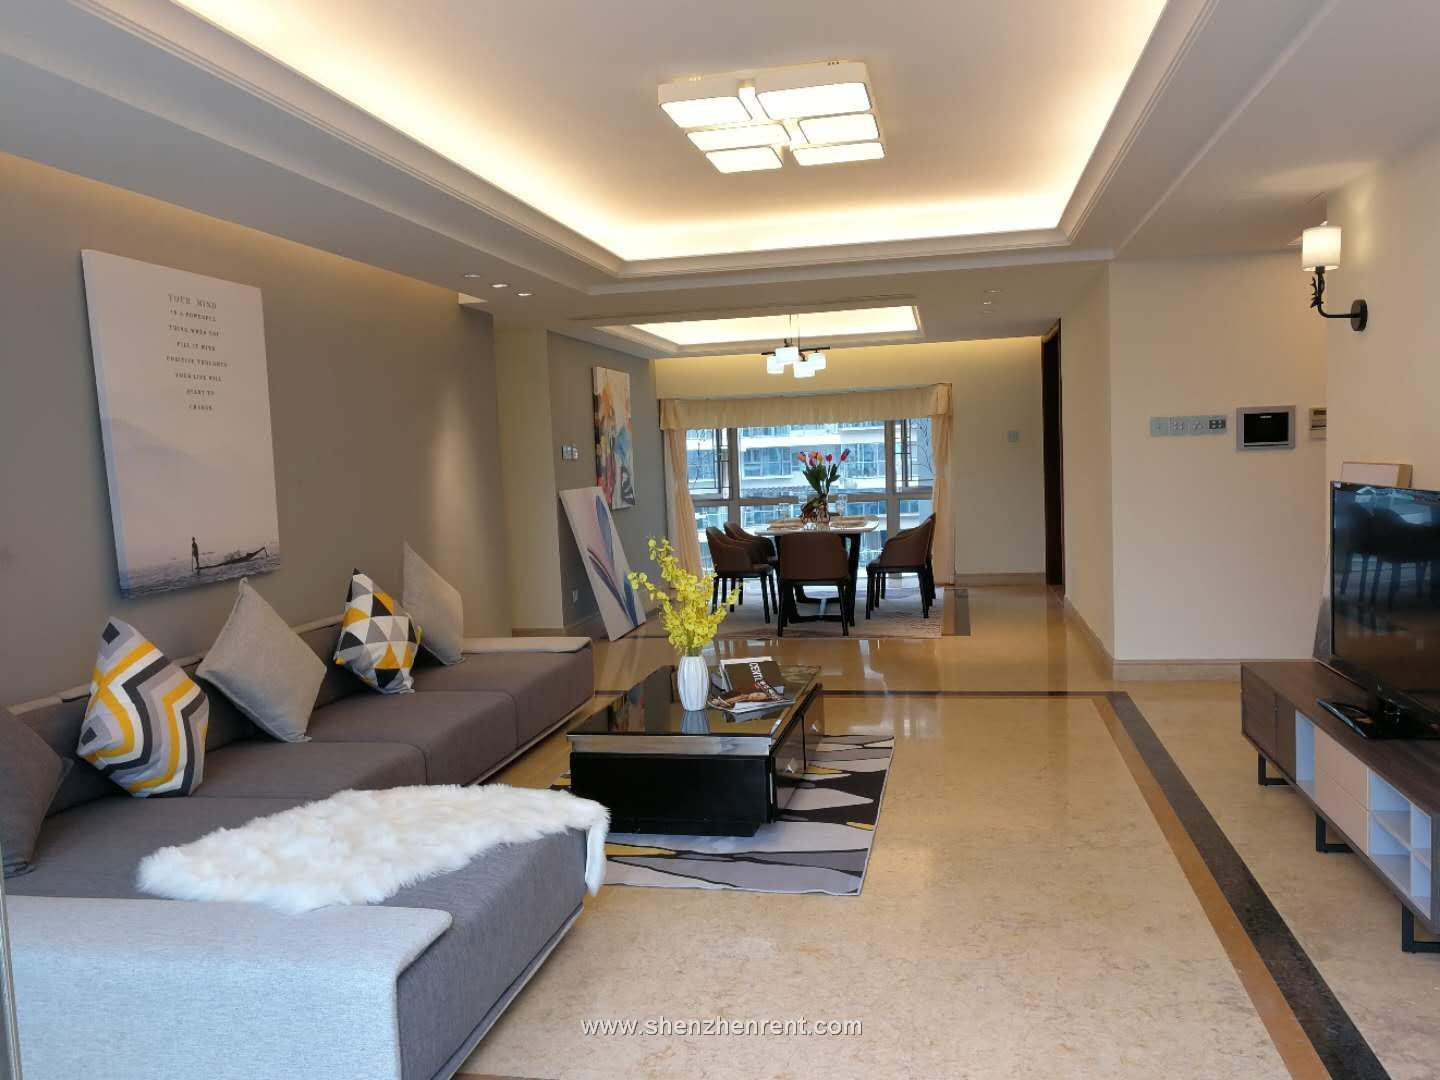 Newly renovated 4 bedrooms apartment in mont orchid for rent